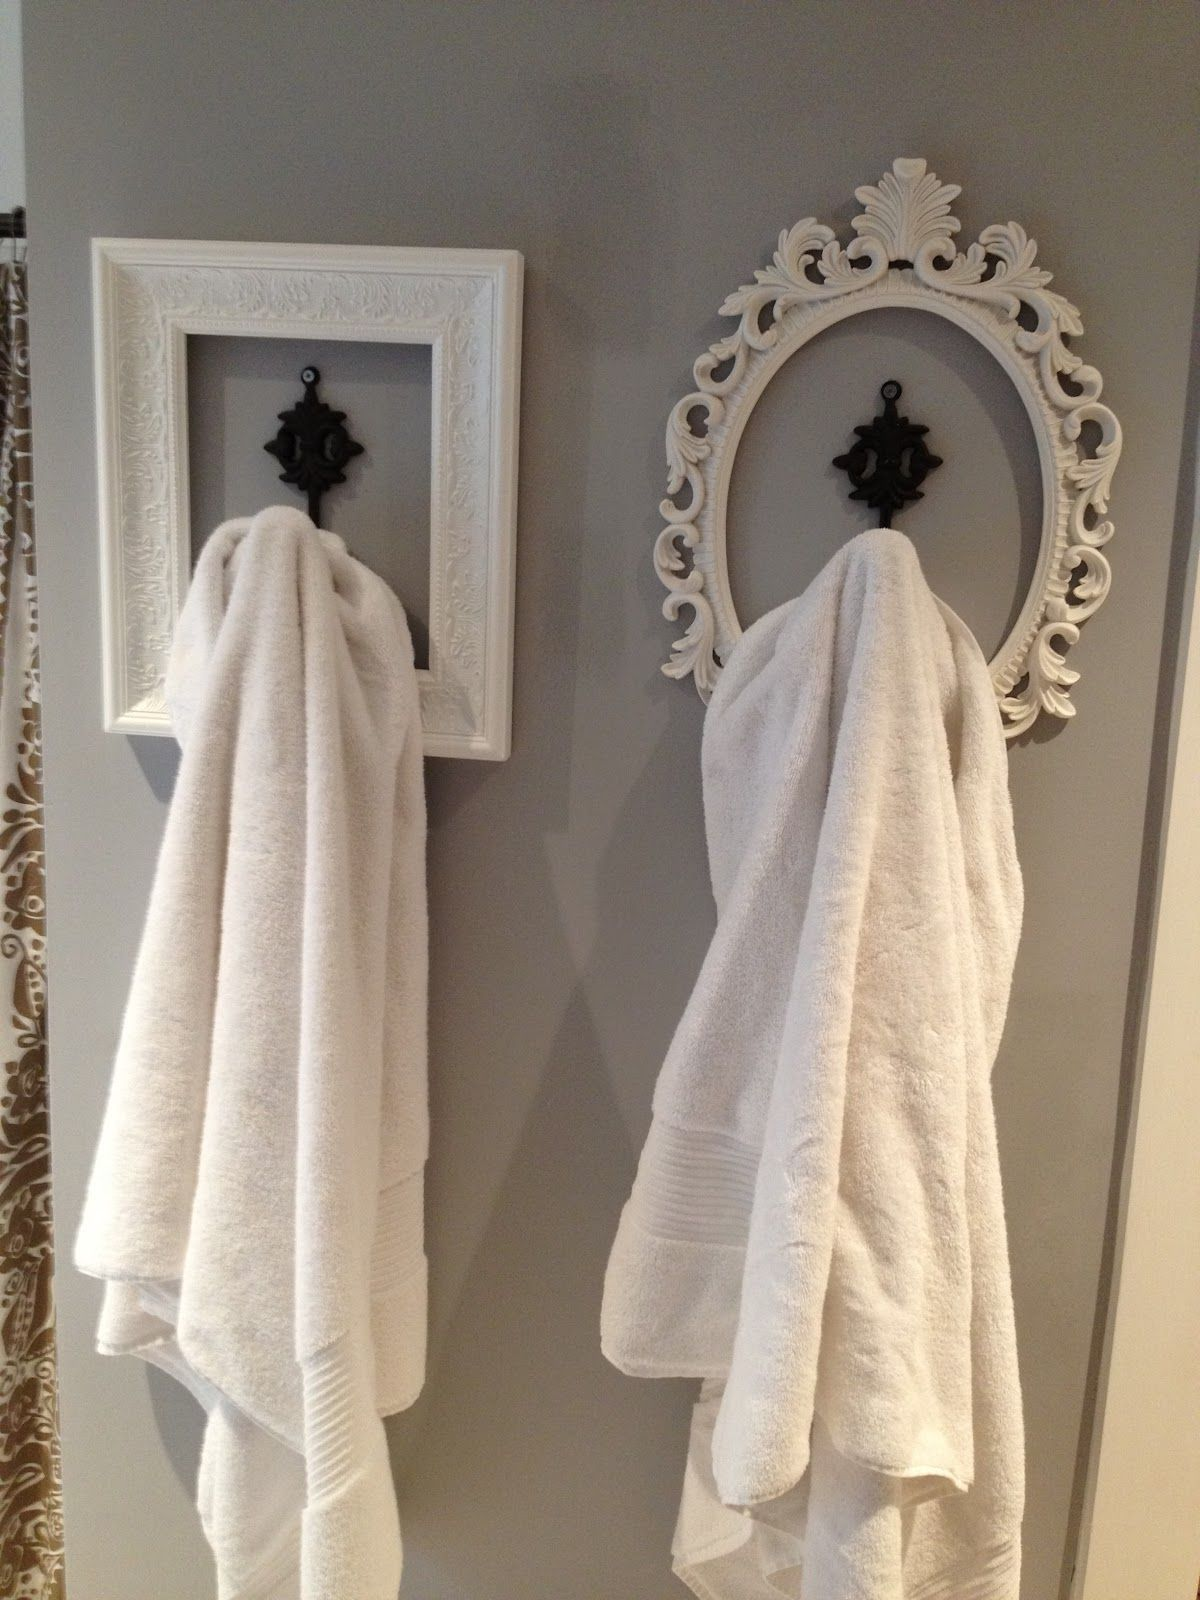 Perfect Look For Basement Bathroom Hang Your Robe Towels Etc Fun Used Old Frames Spray Paint